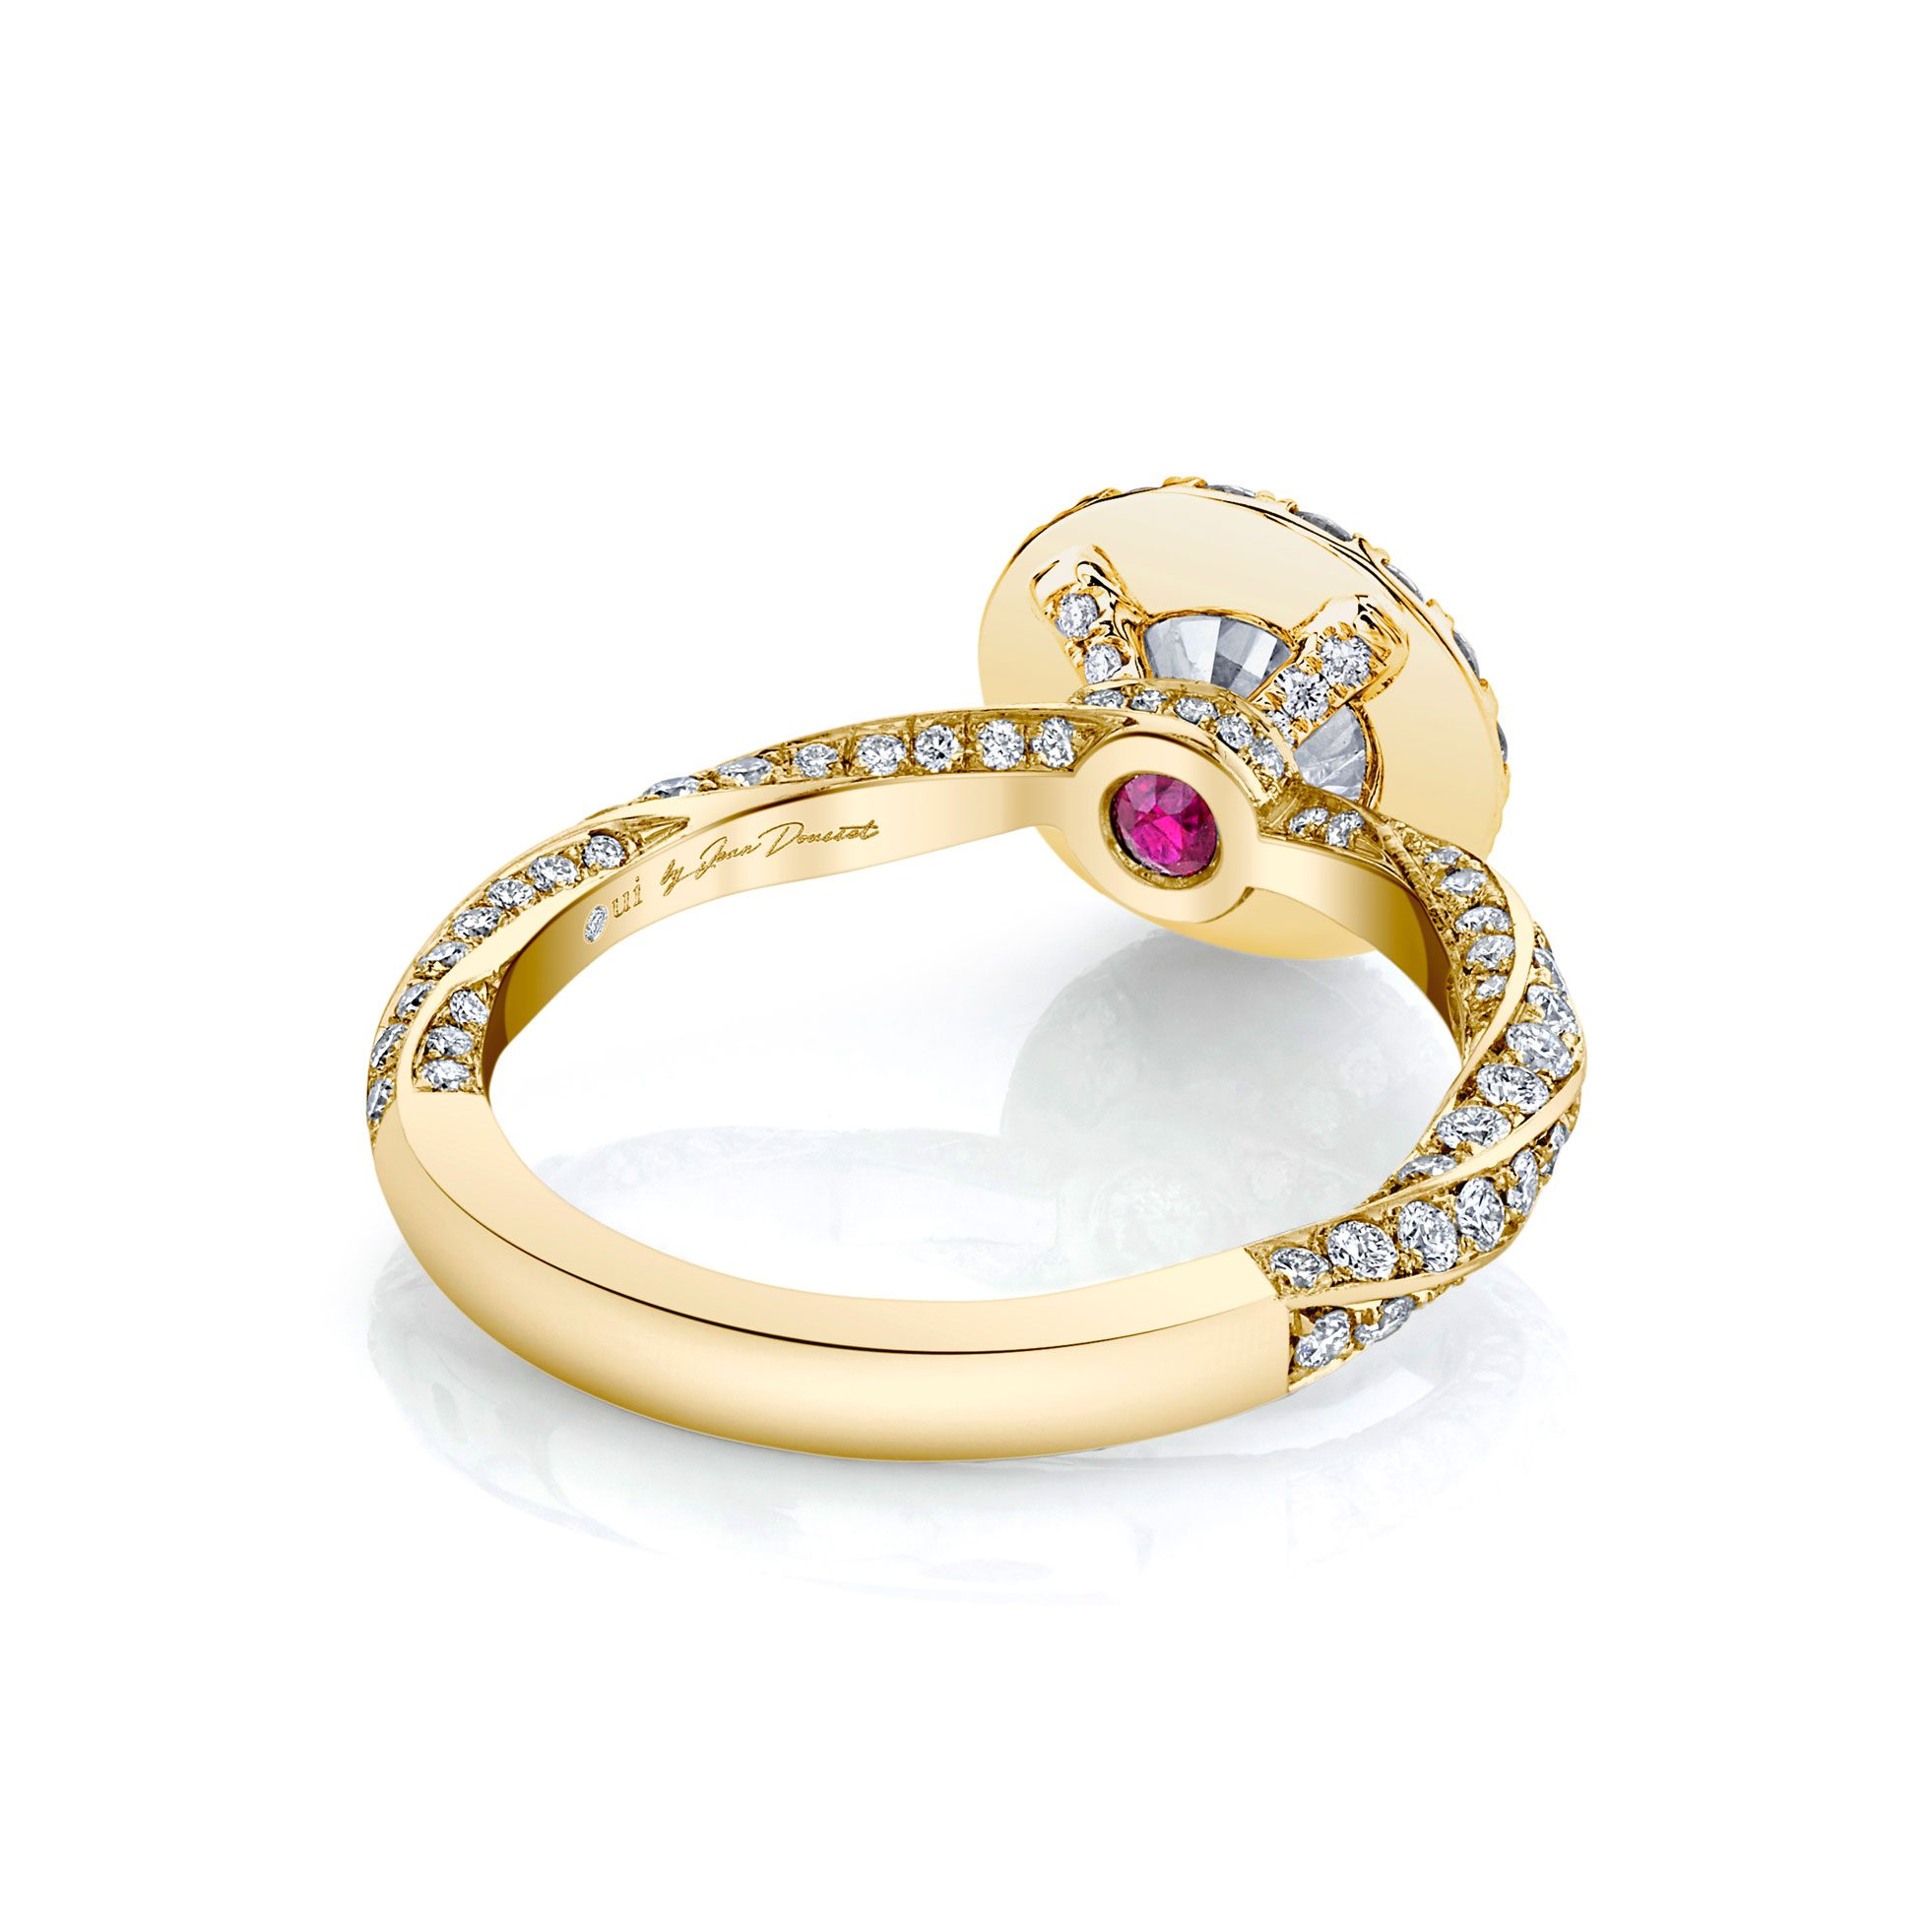 Camille Seamless Halo® Round Brilliant Engagement Ring 18k Yellow Gold Back Shot